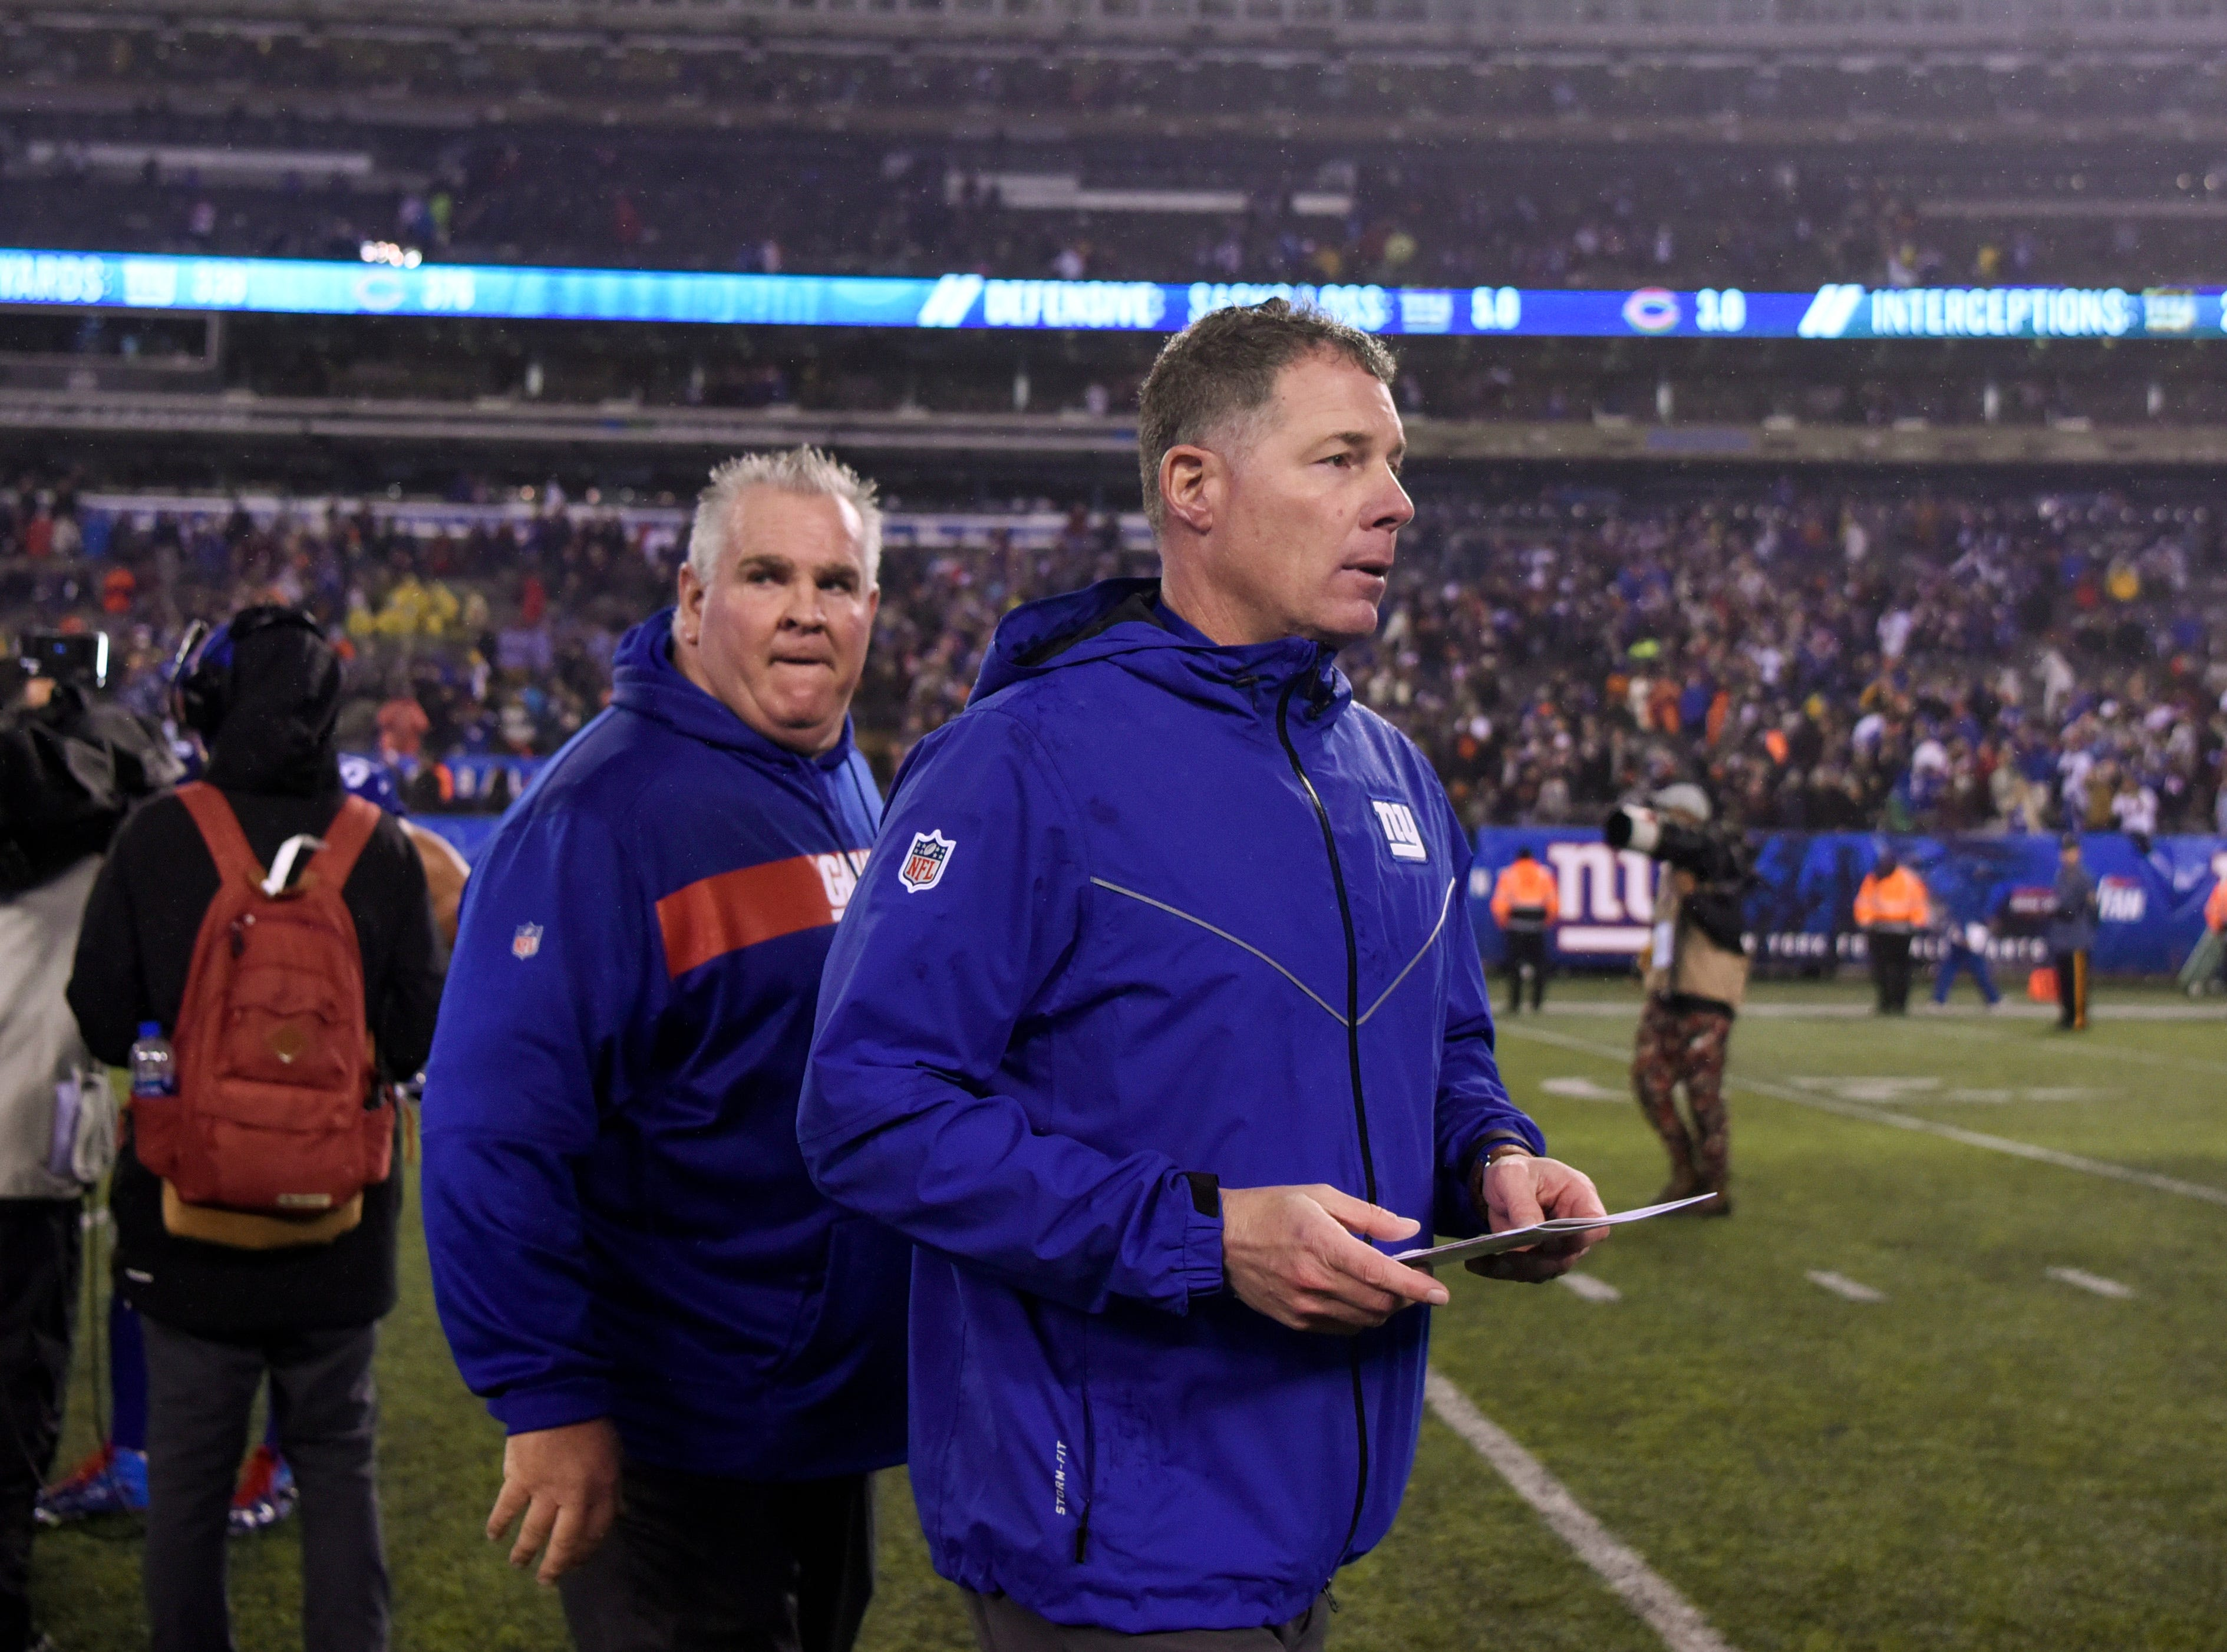 New York Giants head coach Pat Shurmur walks off the field after his team defeats the Chicago Bears in overtime on Sunday, Dec. 2, 2018, in East Rutherford.